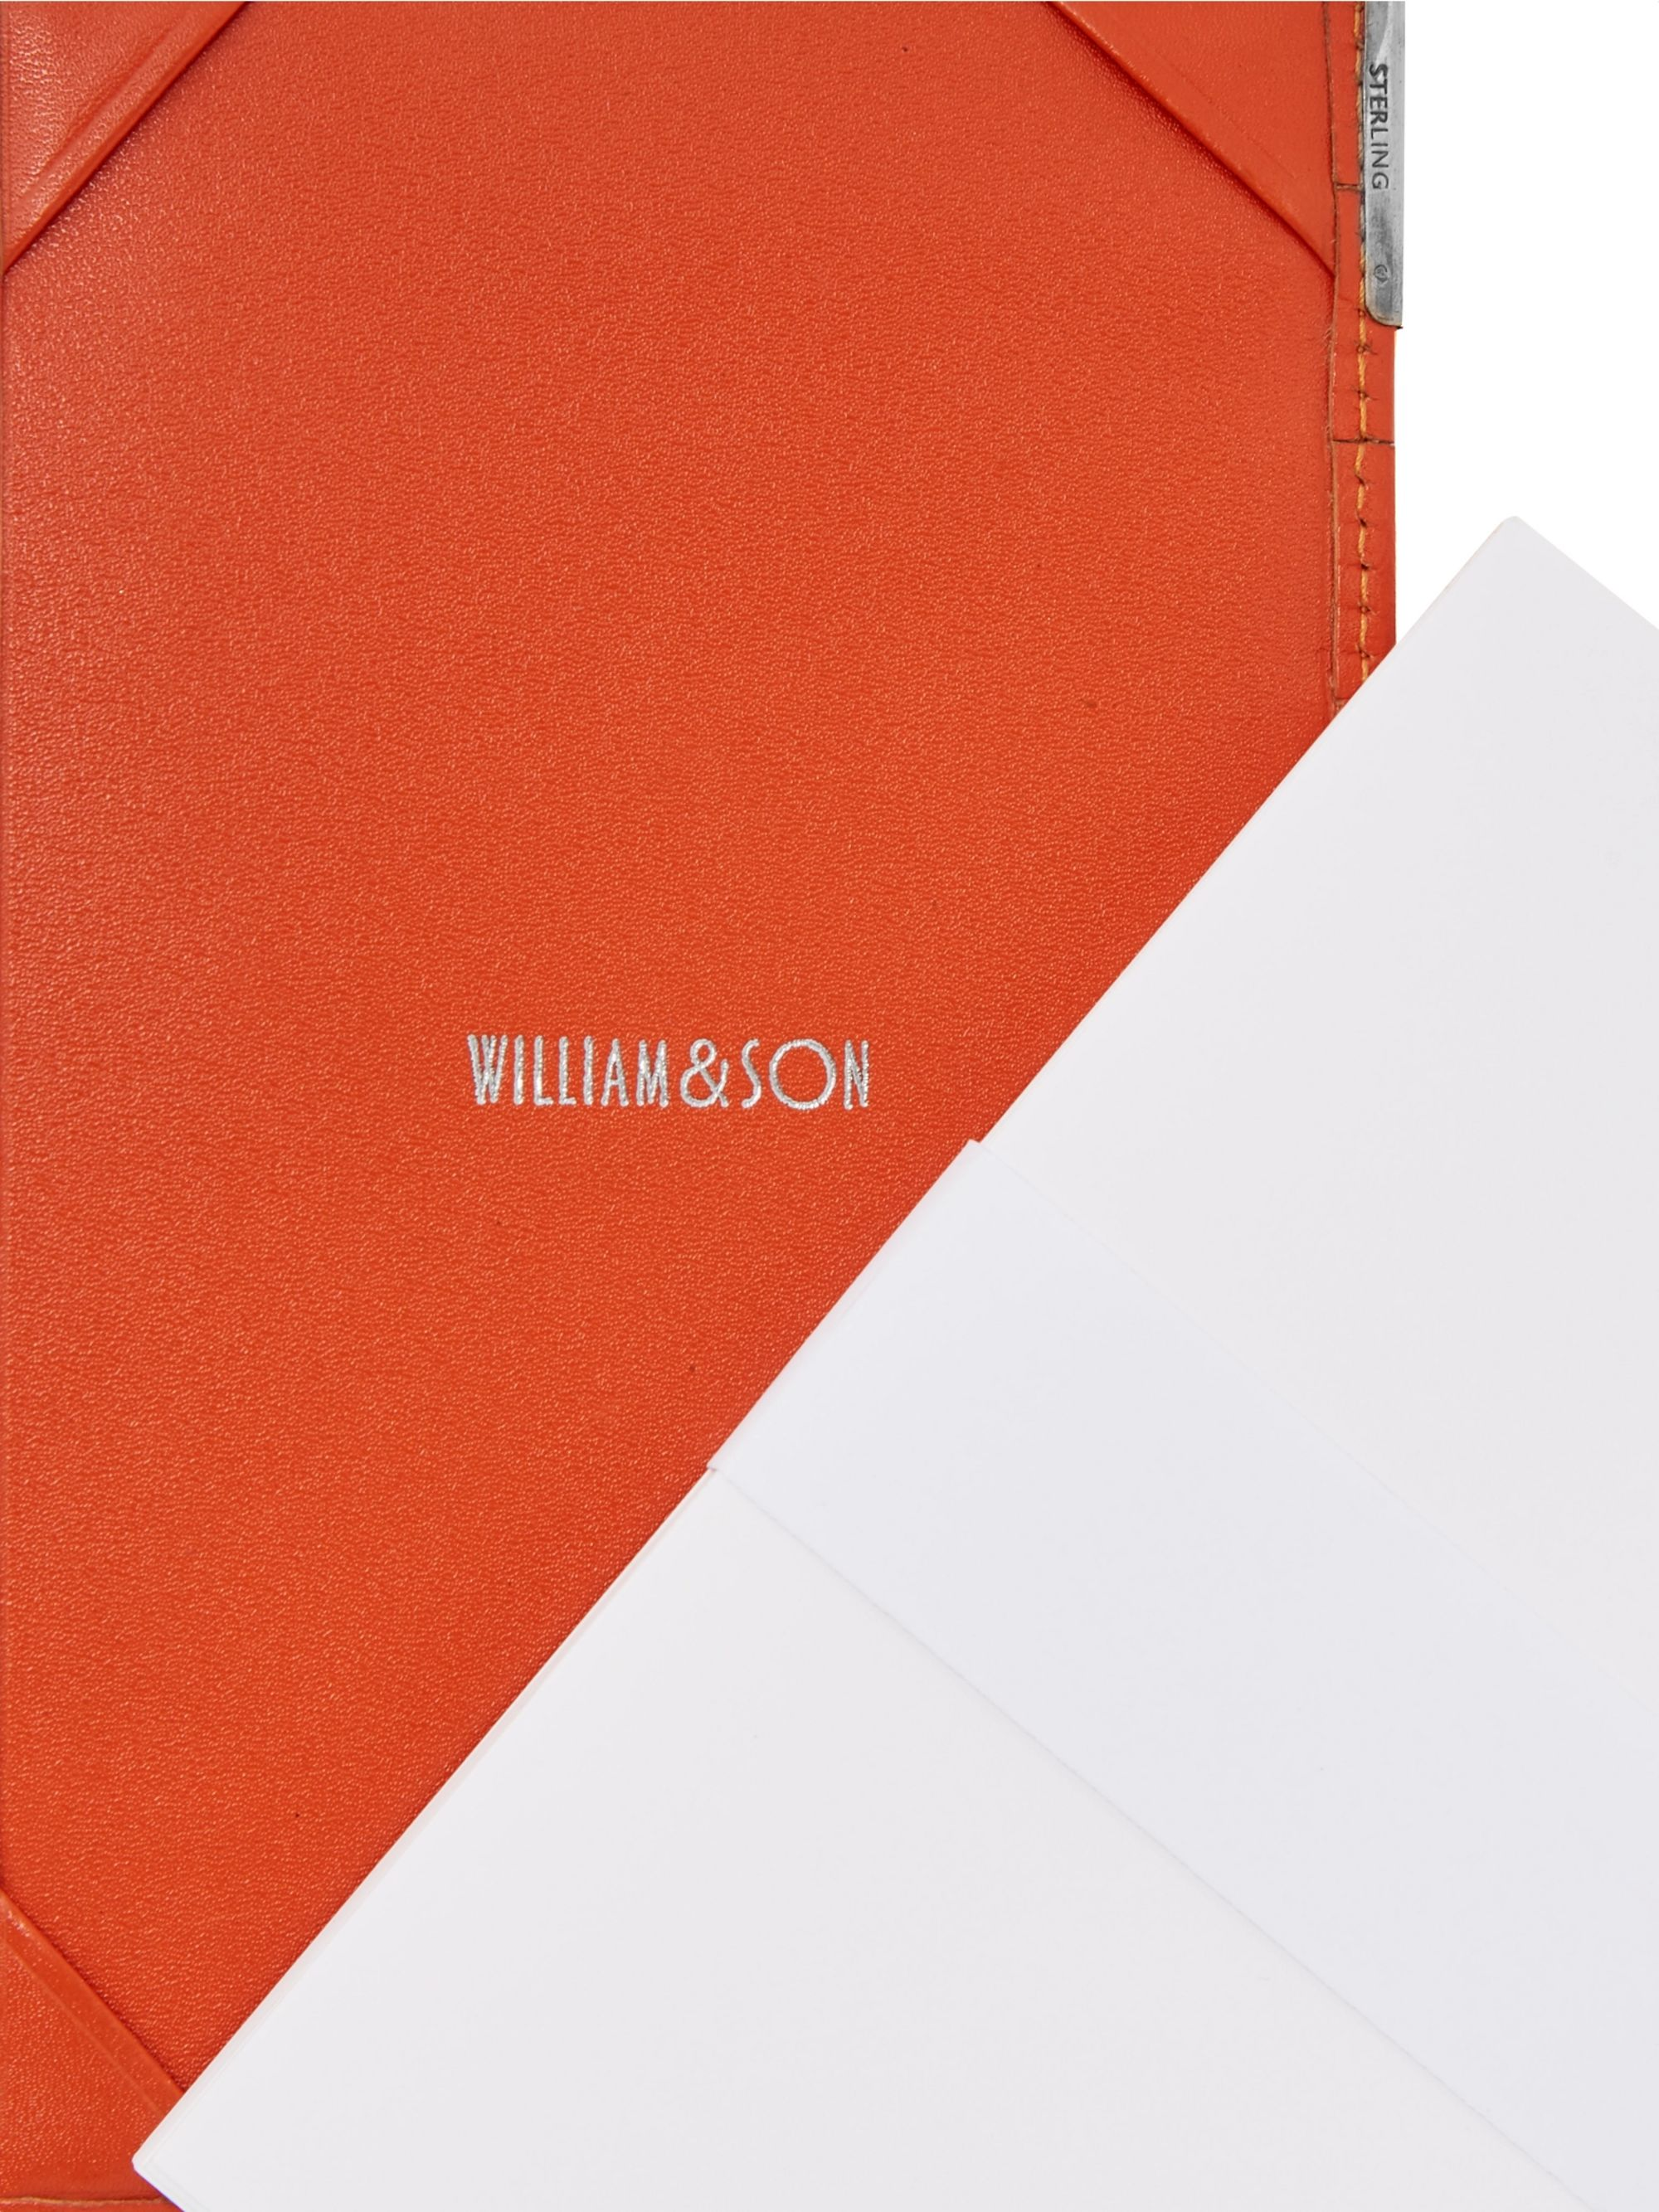 William & Son Sterling Silver and Leather Notebook and Cardholder